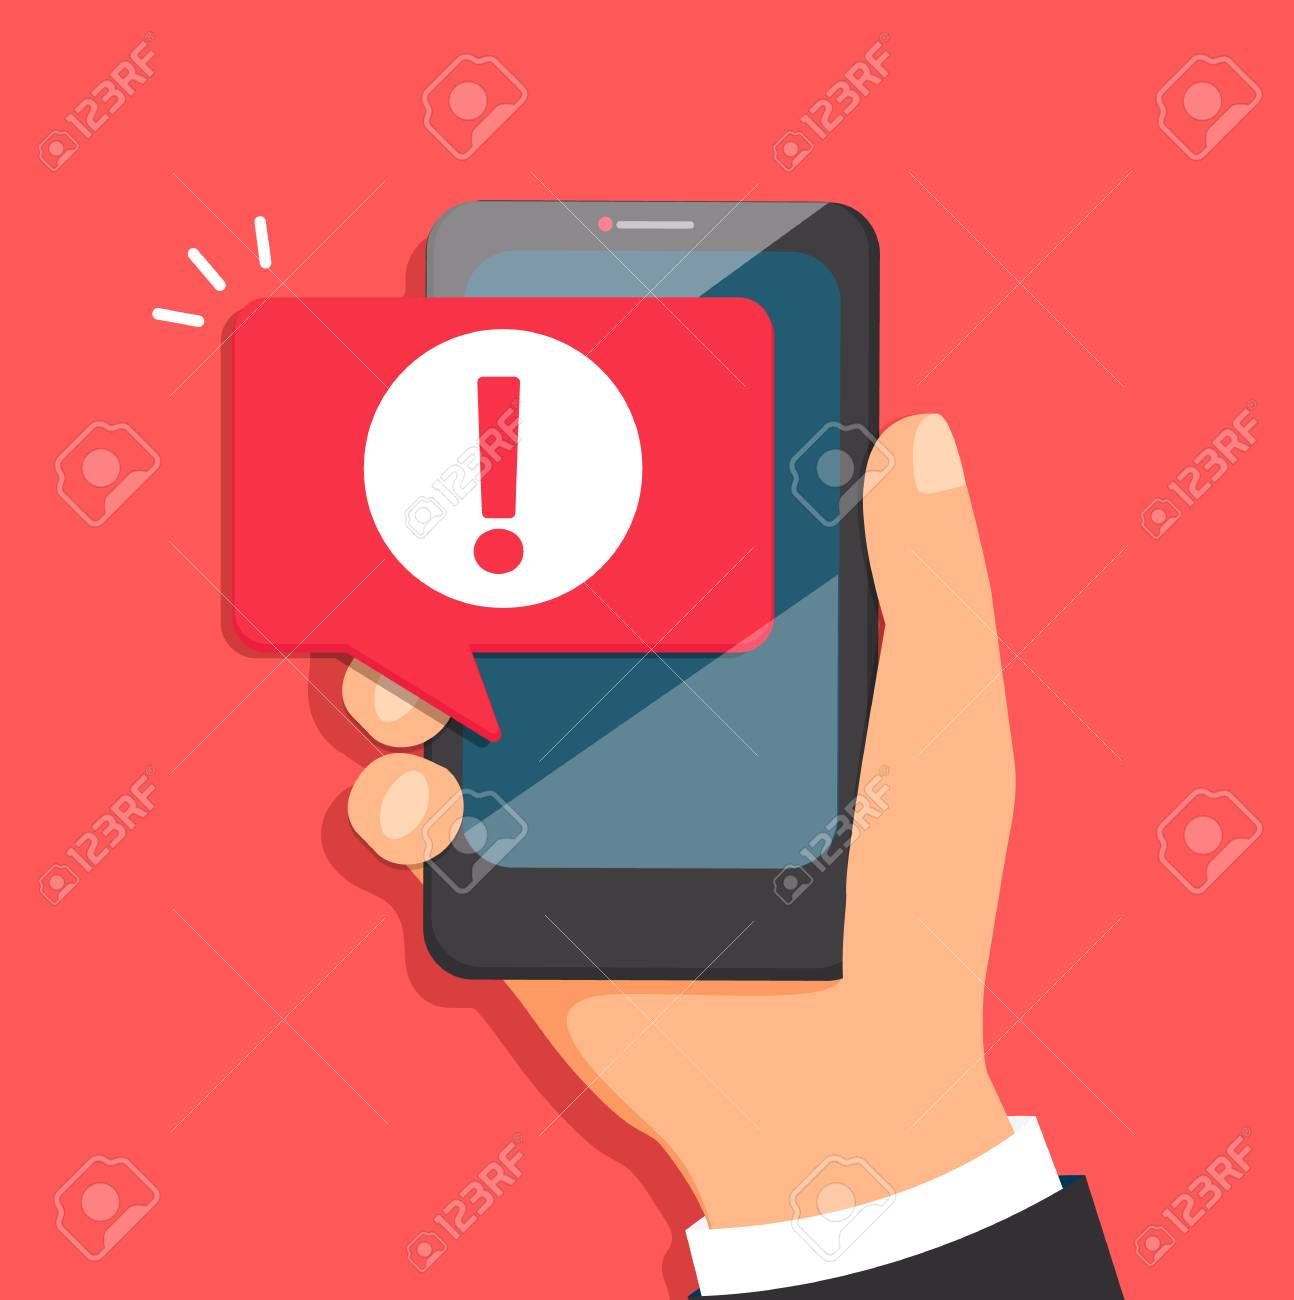 Concept of malware notification or error in mobile phone. Attention message bubble in smartphone. Red alert warning of spam data, insecure connection, scam, virus. Vector illustration. - 96963671